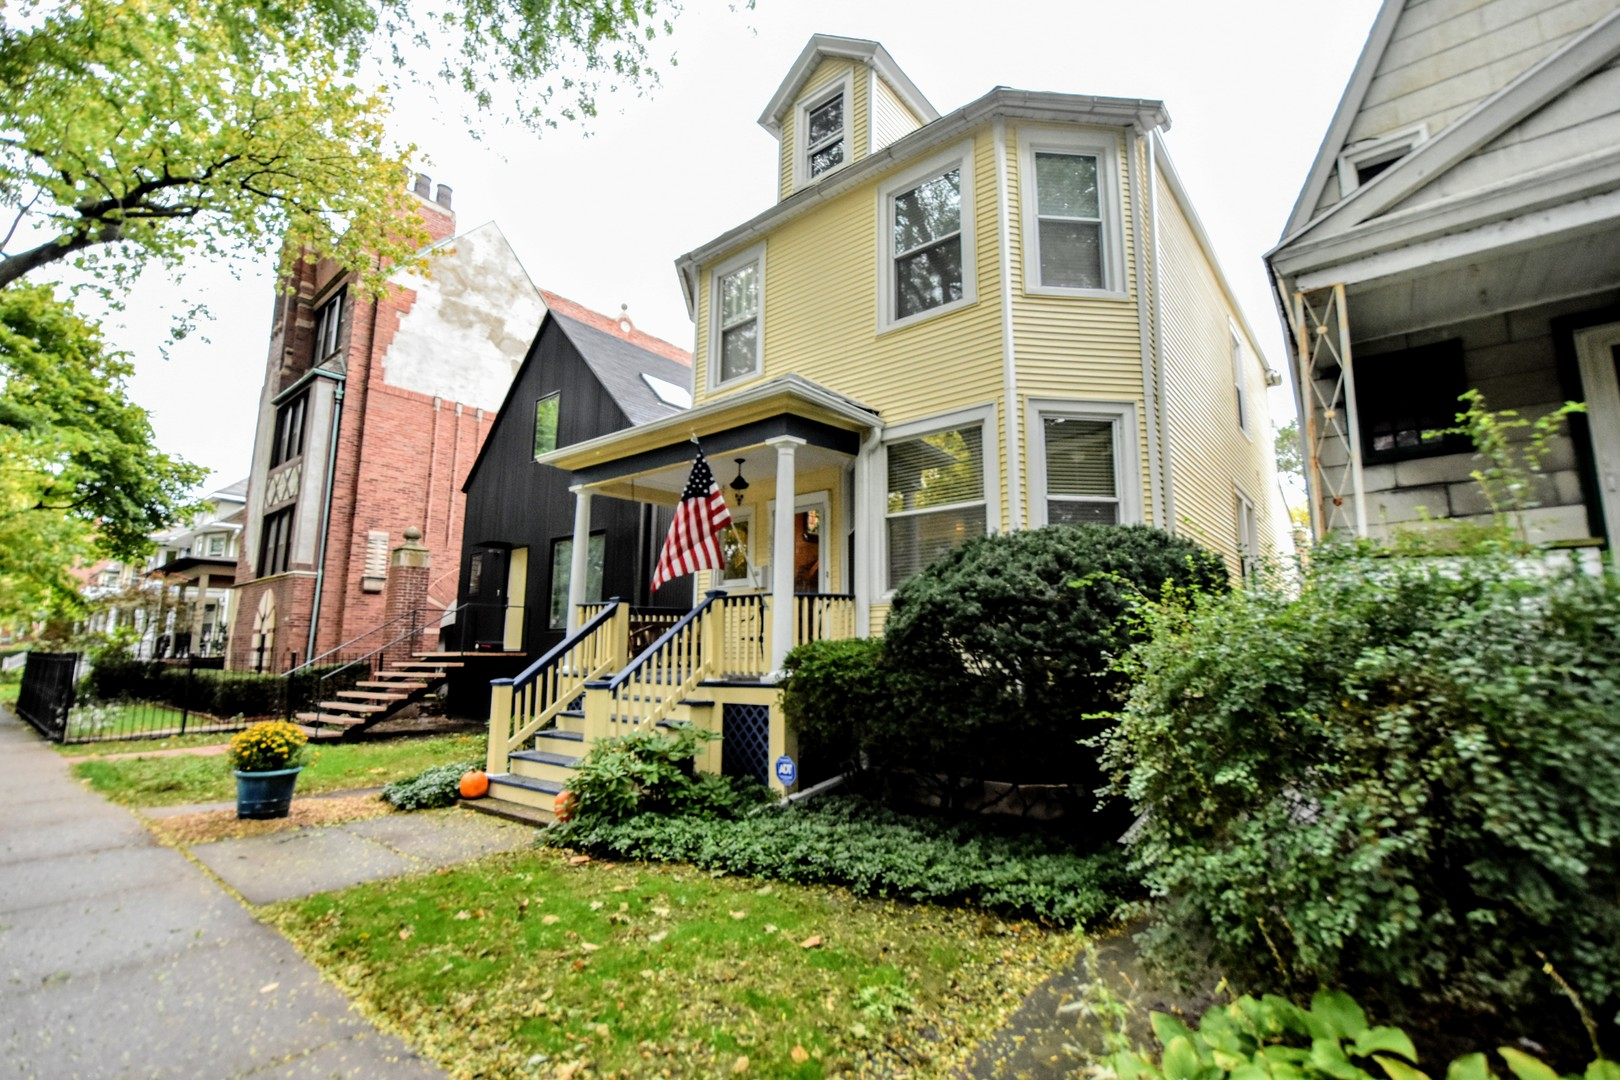 6231 North Lakewood Avenue, one of homes for sale in Edgewater